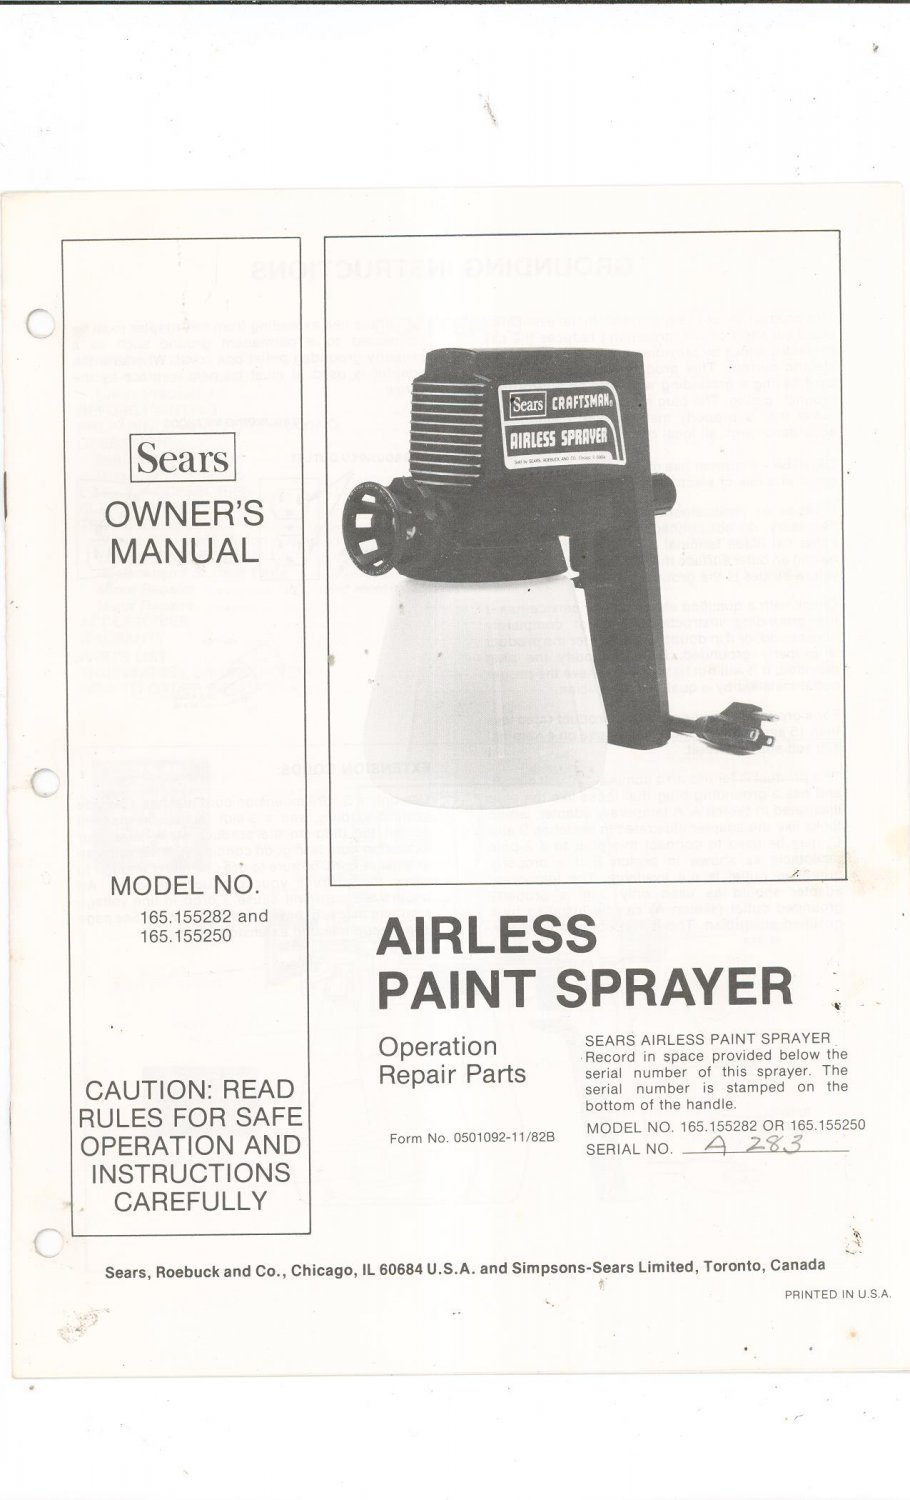 sears owners manual model no 758.624600